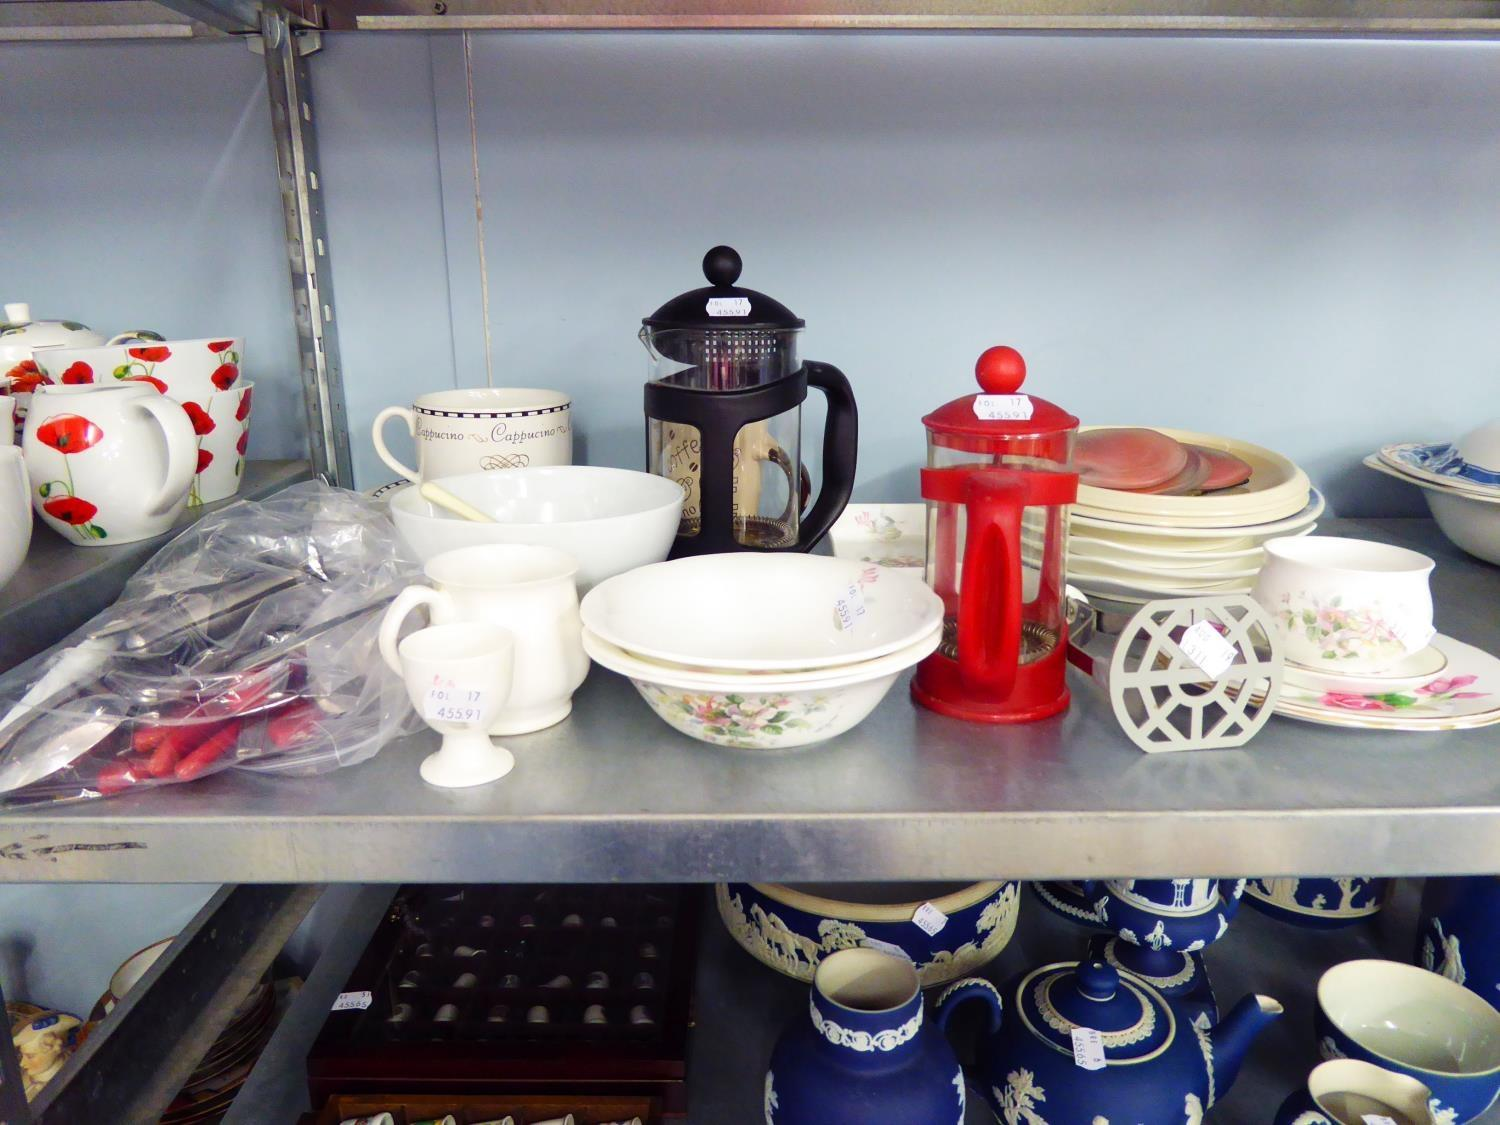 Lot 265 - LARGE CERAMIC BISCUIT BARREL OWL, QUANTITY OF CUTLERY, BLUE AND WHITE JUG AND QUANTITY OF VARIOUS